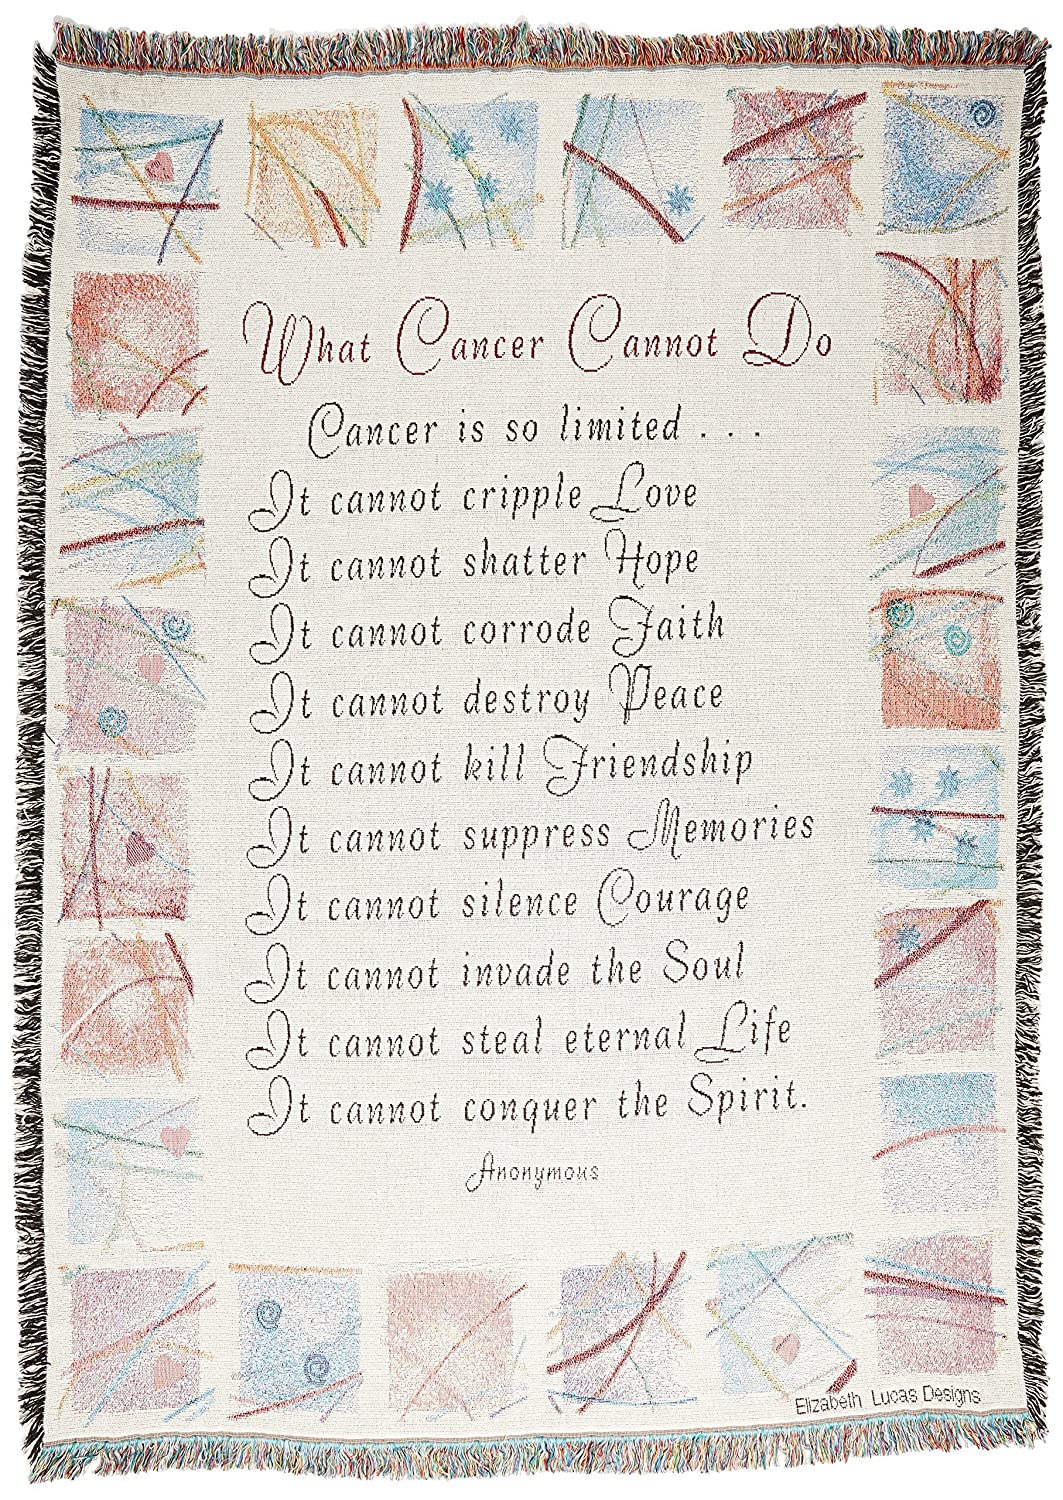 What Cancer Cannot Do Survivor Woven Tapestry Throw Blanket Cotton with Fringe Cotton USA 72x54 2562-T Pure Country Weavers